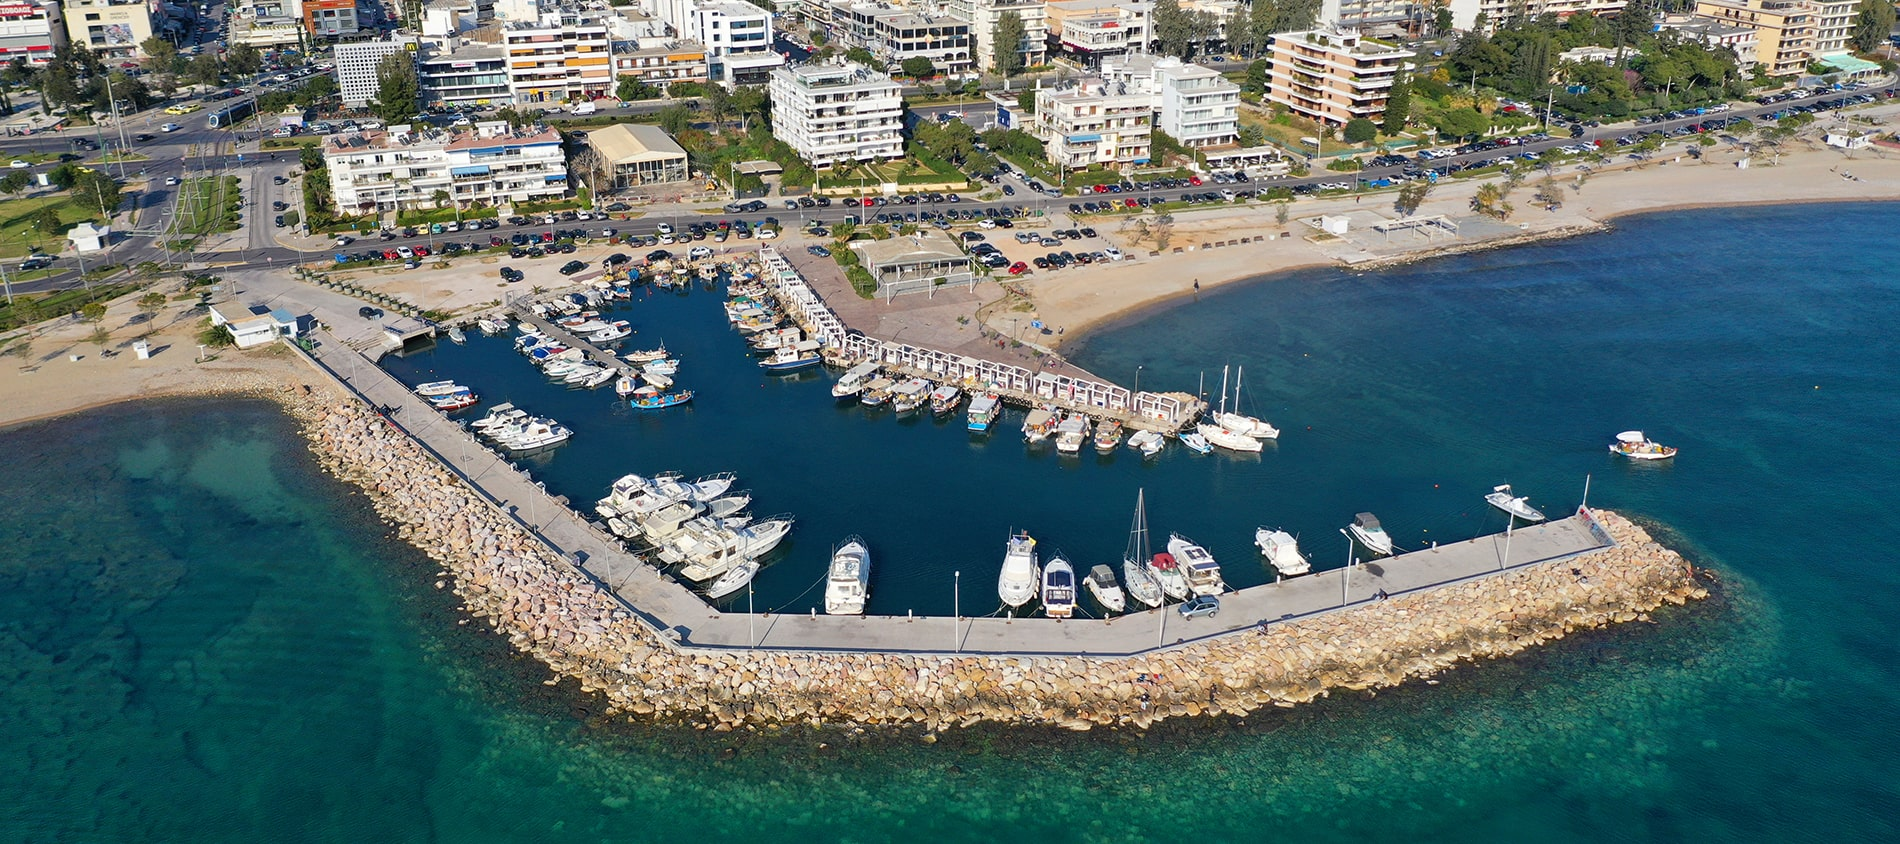 Glyfada Greece Aerial photo